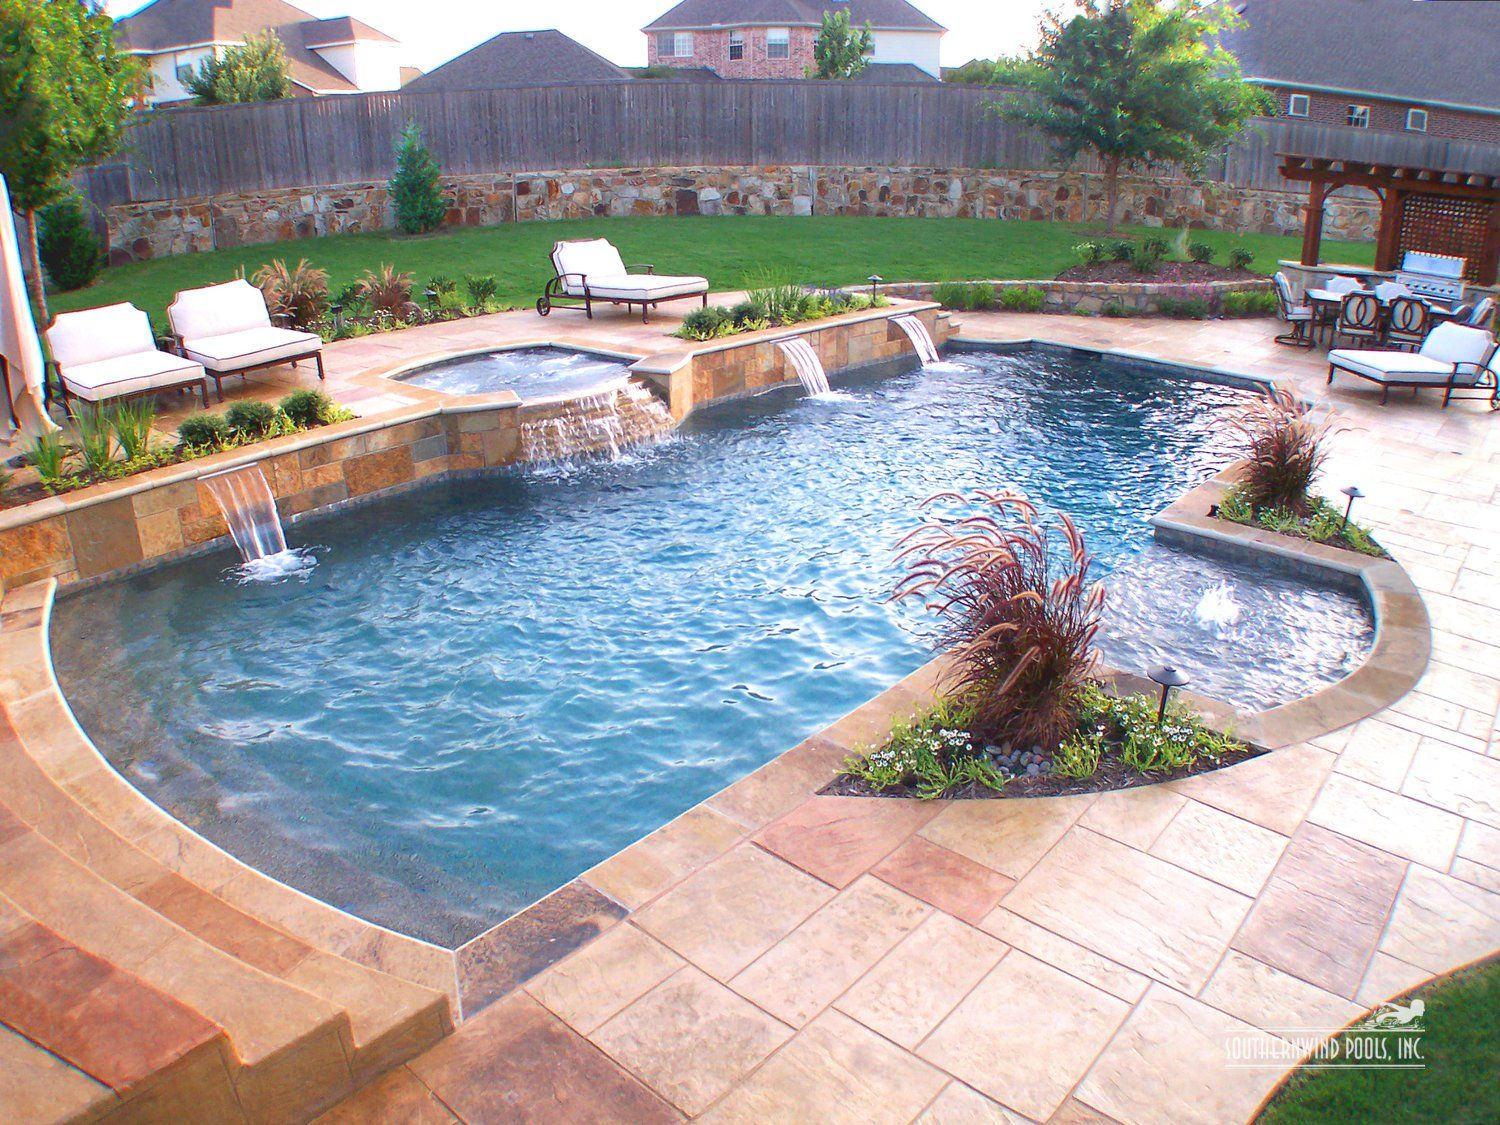 Southernwind Pools Our Pools Classic Formal Pools Gallery Backyard Pool Landscaping Pool House Designs Pool Houses